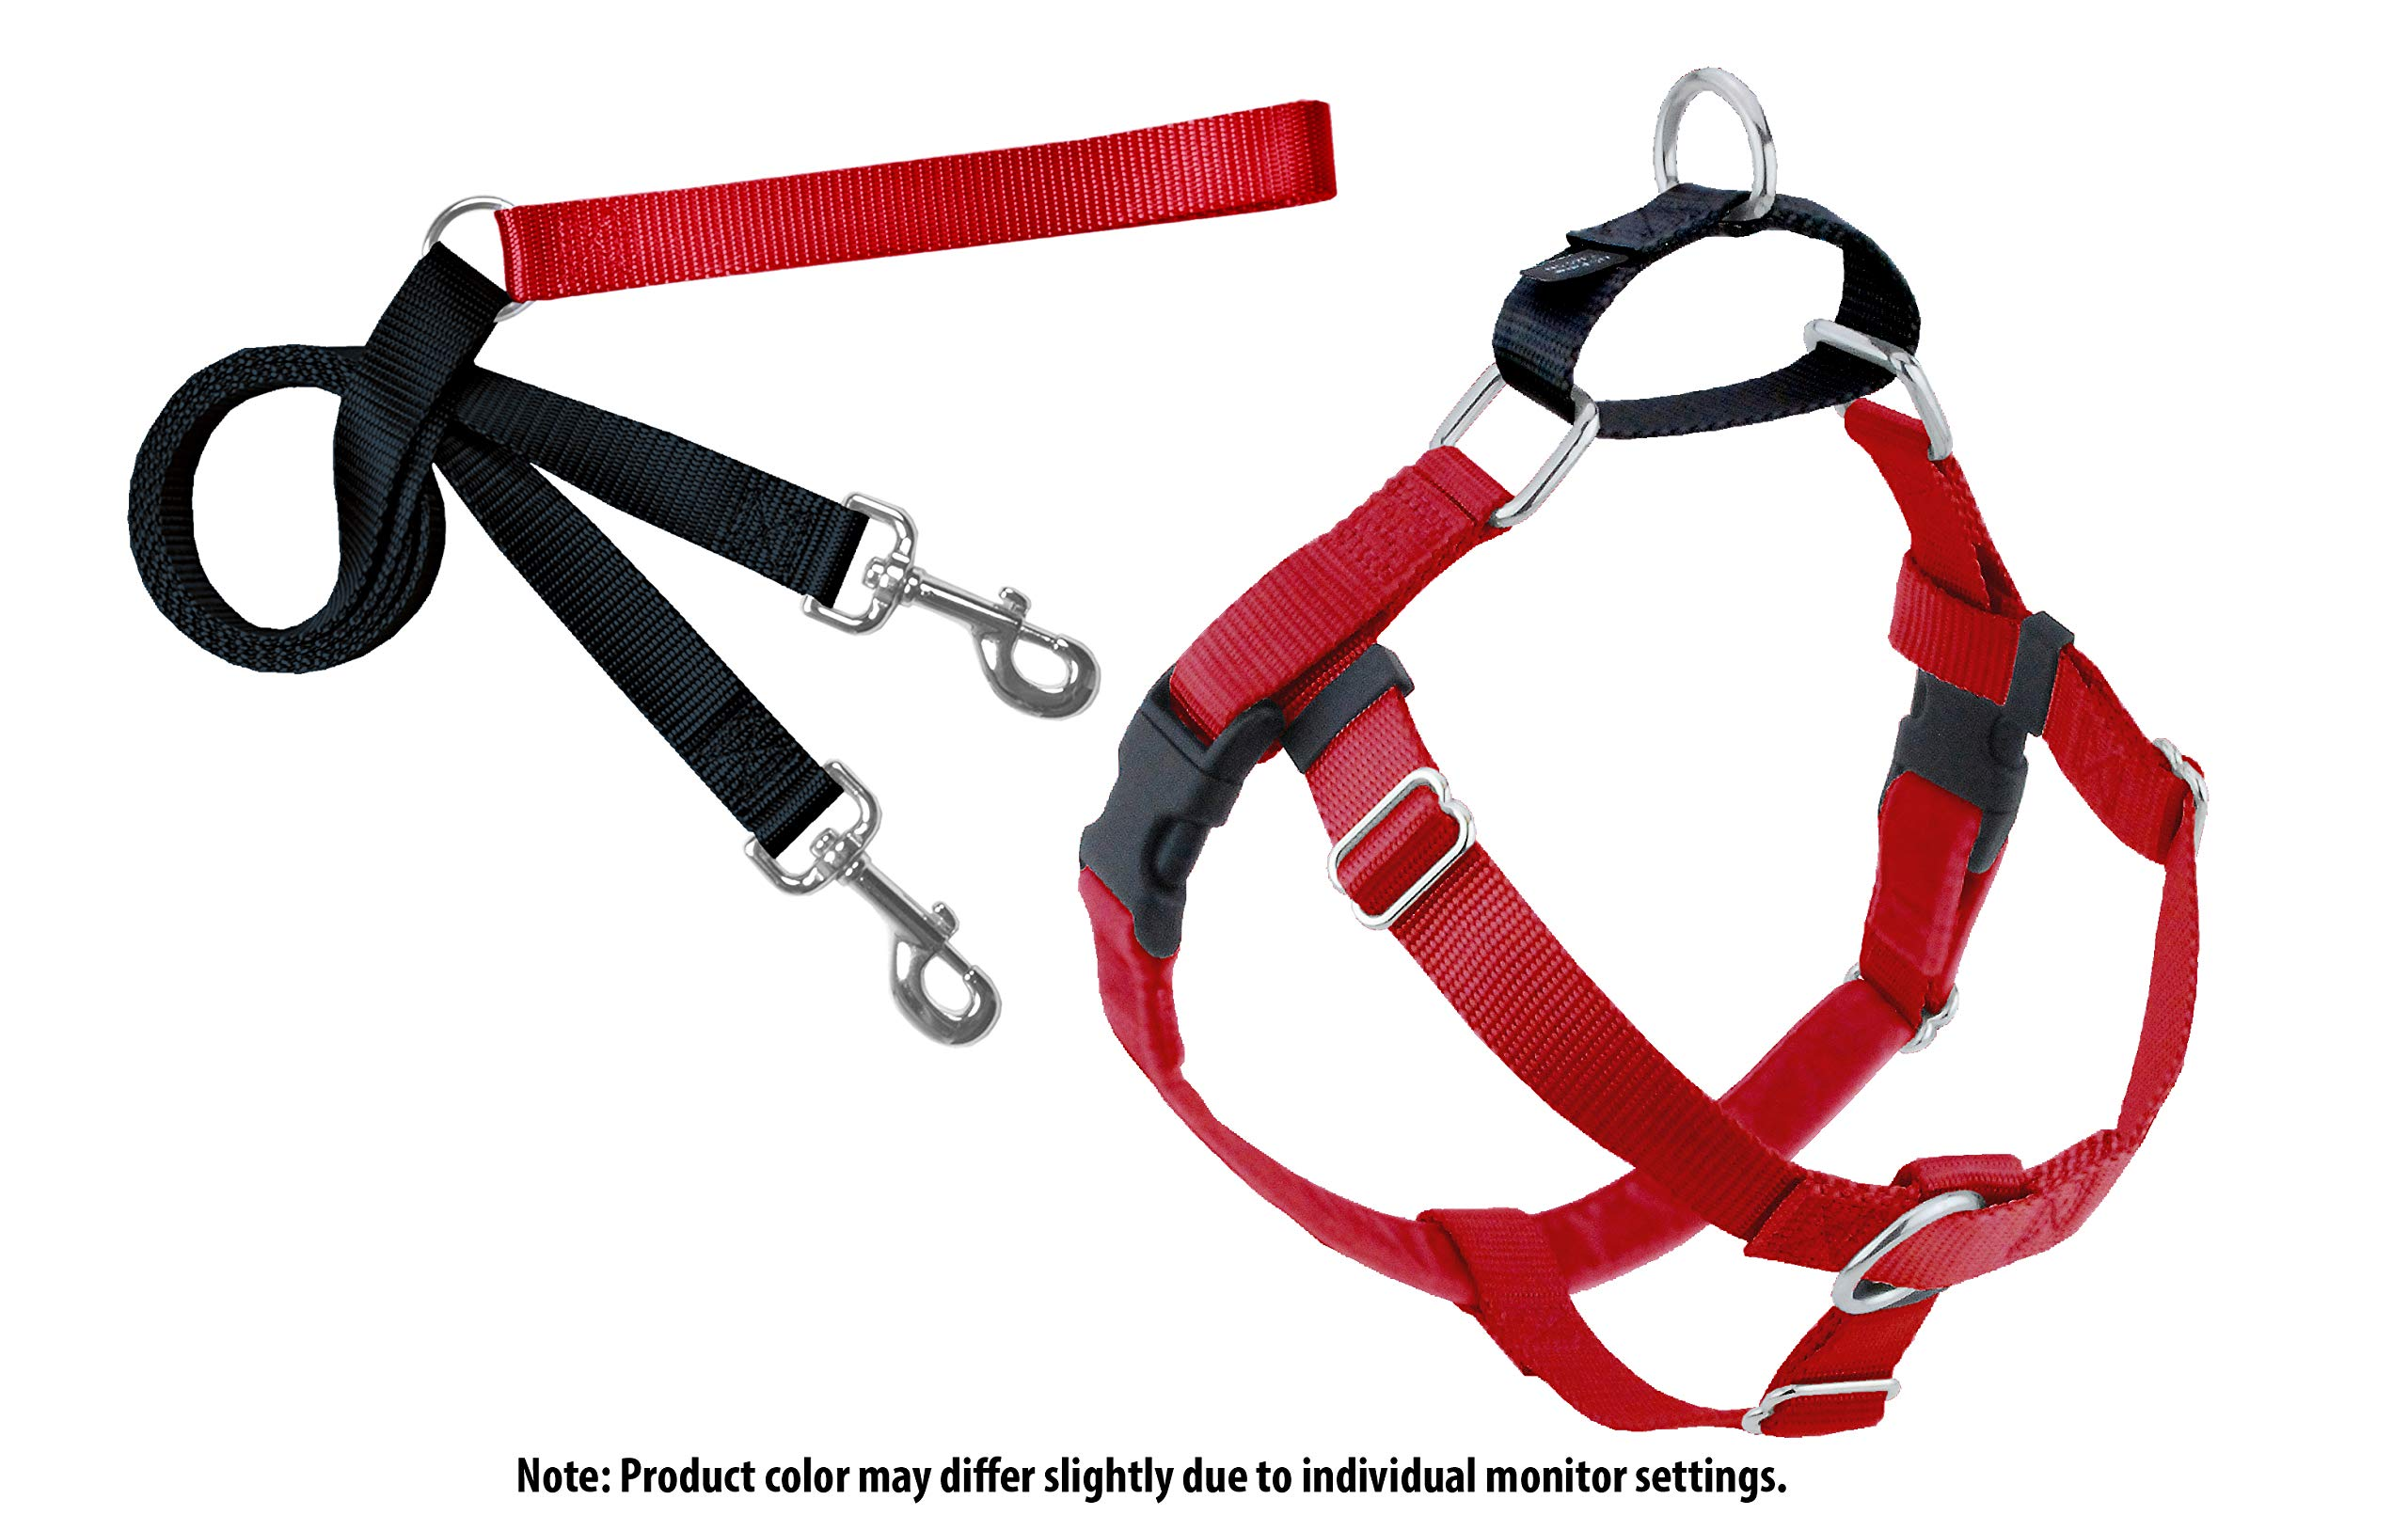 2 Hounds Design Freedom No-Pull Dog Harness and Leash, Adjustable Comfortable Control for Dog Walking, Made in USA (Small 5/8'') (Red)